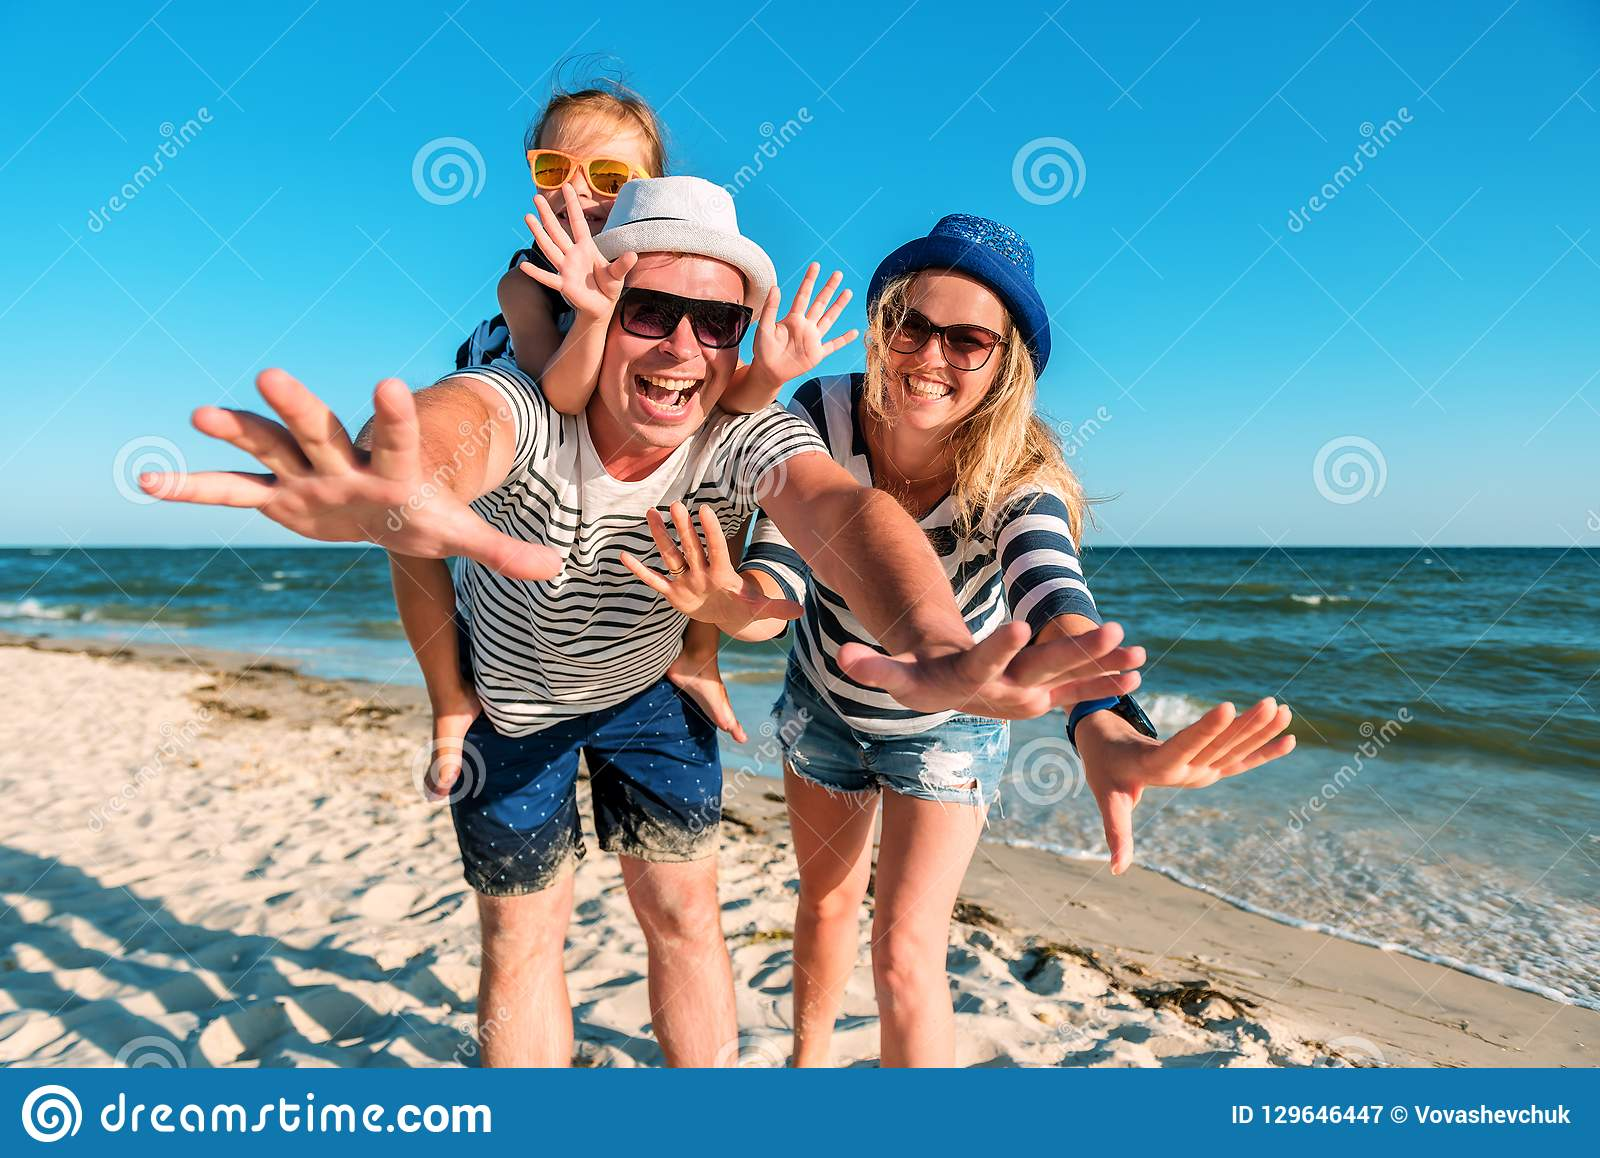 Funny Family On The Beach Stock Image Image Of Caucasian 129646447